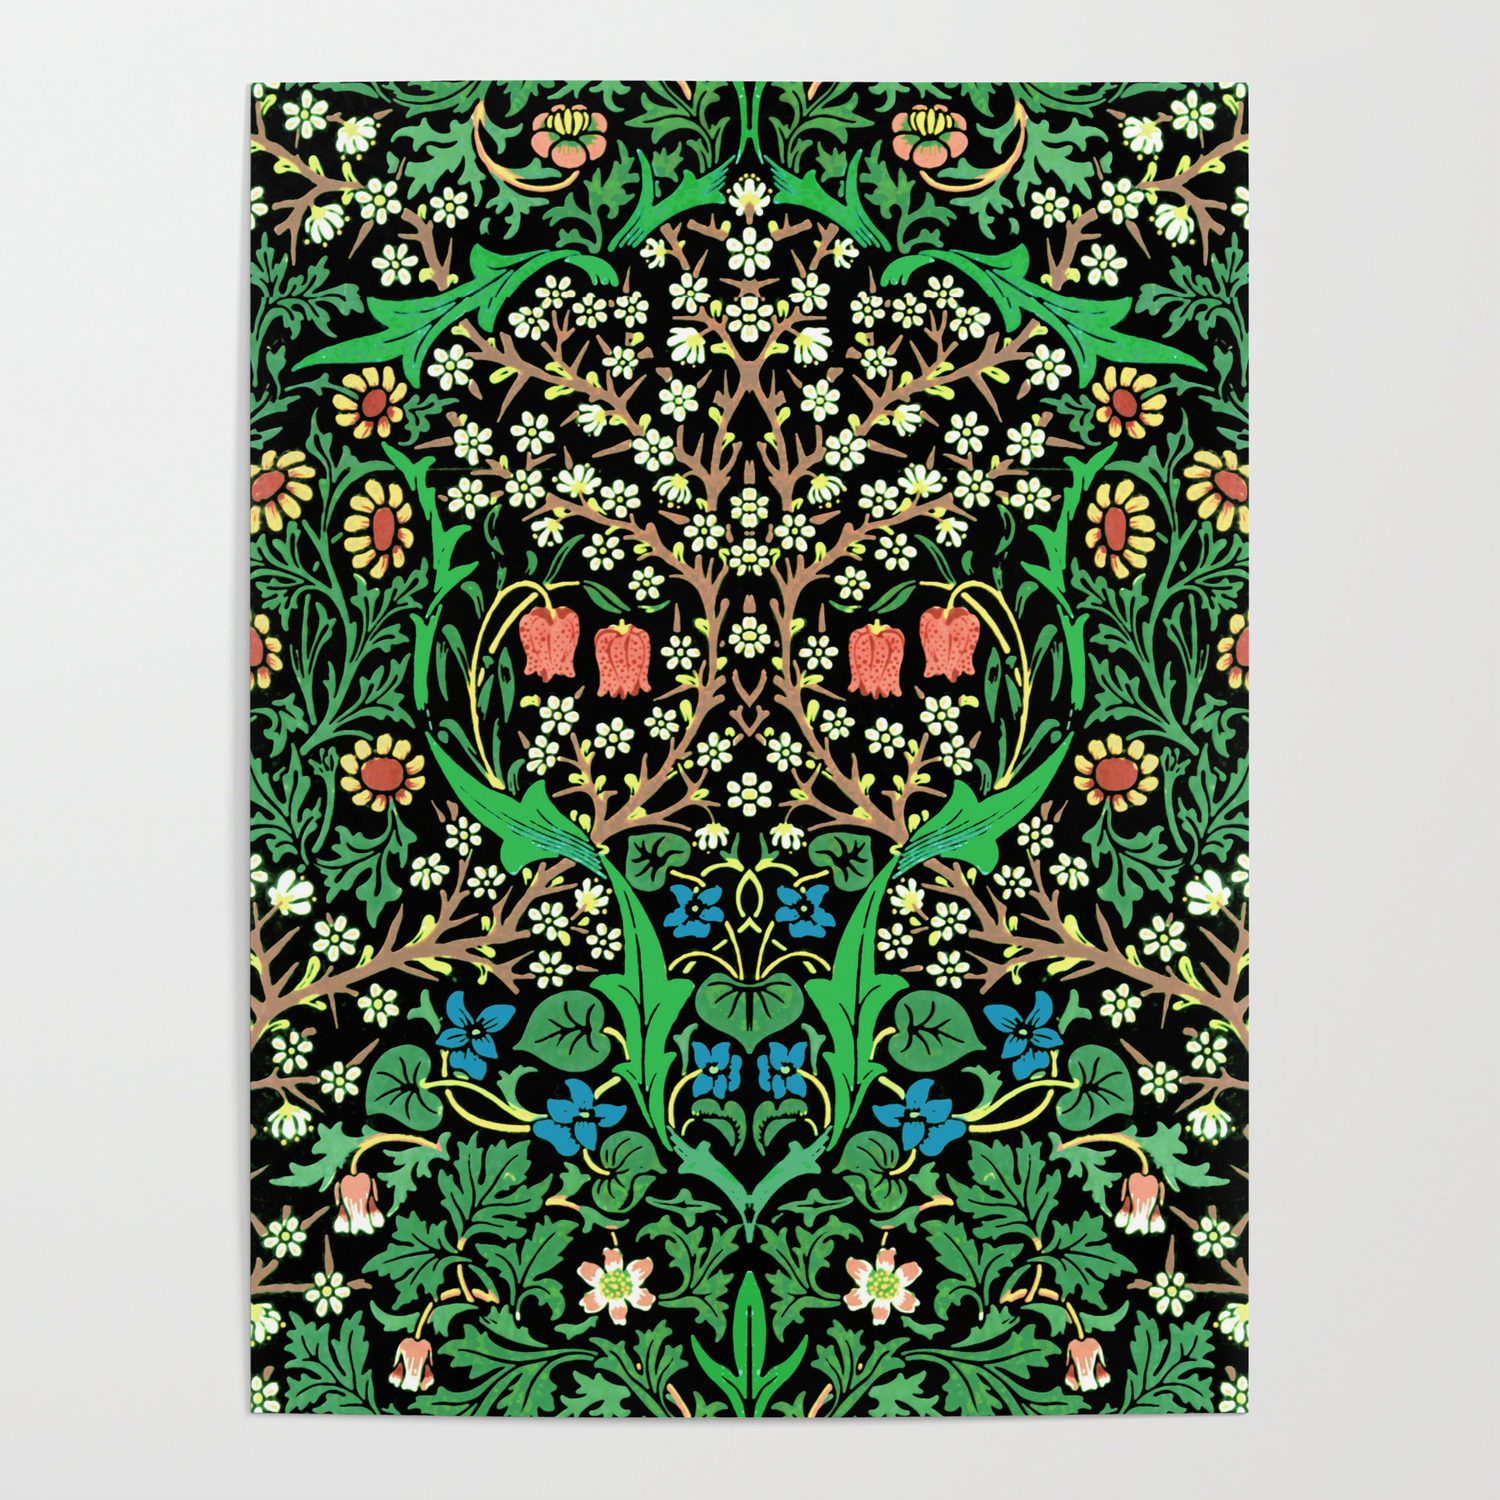 William Morris Jacobean Floral Black Background Poster by 1500x1500